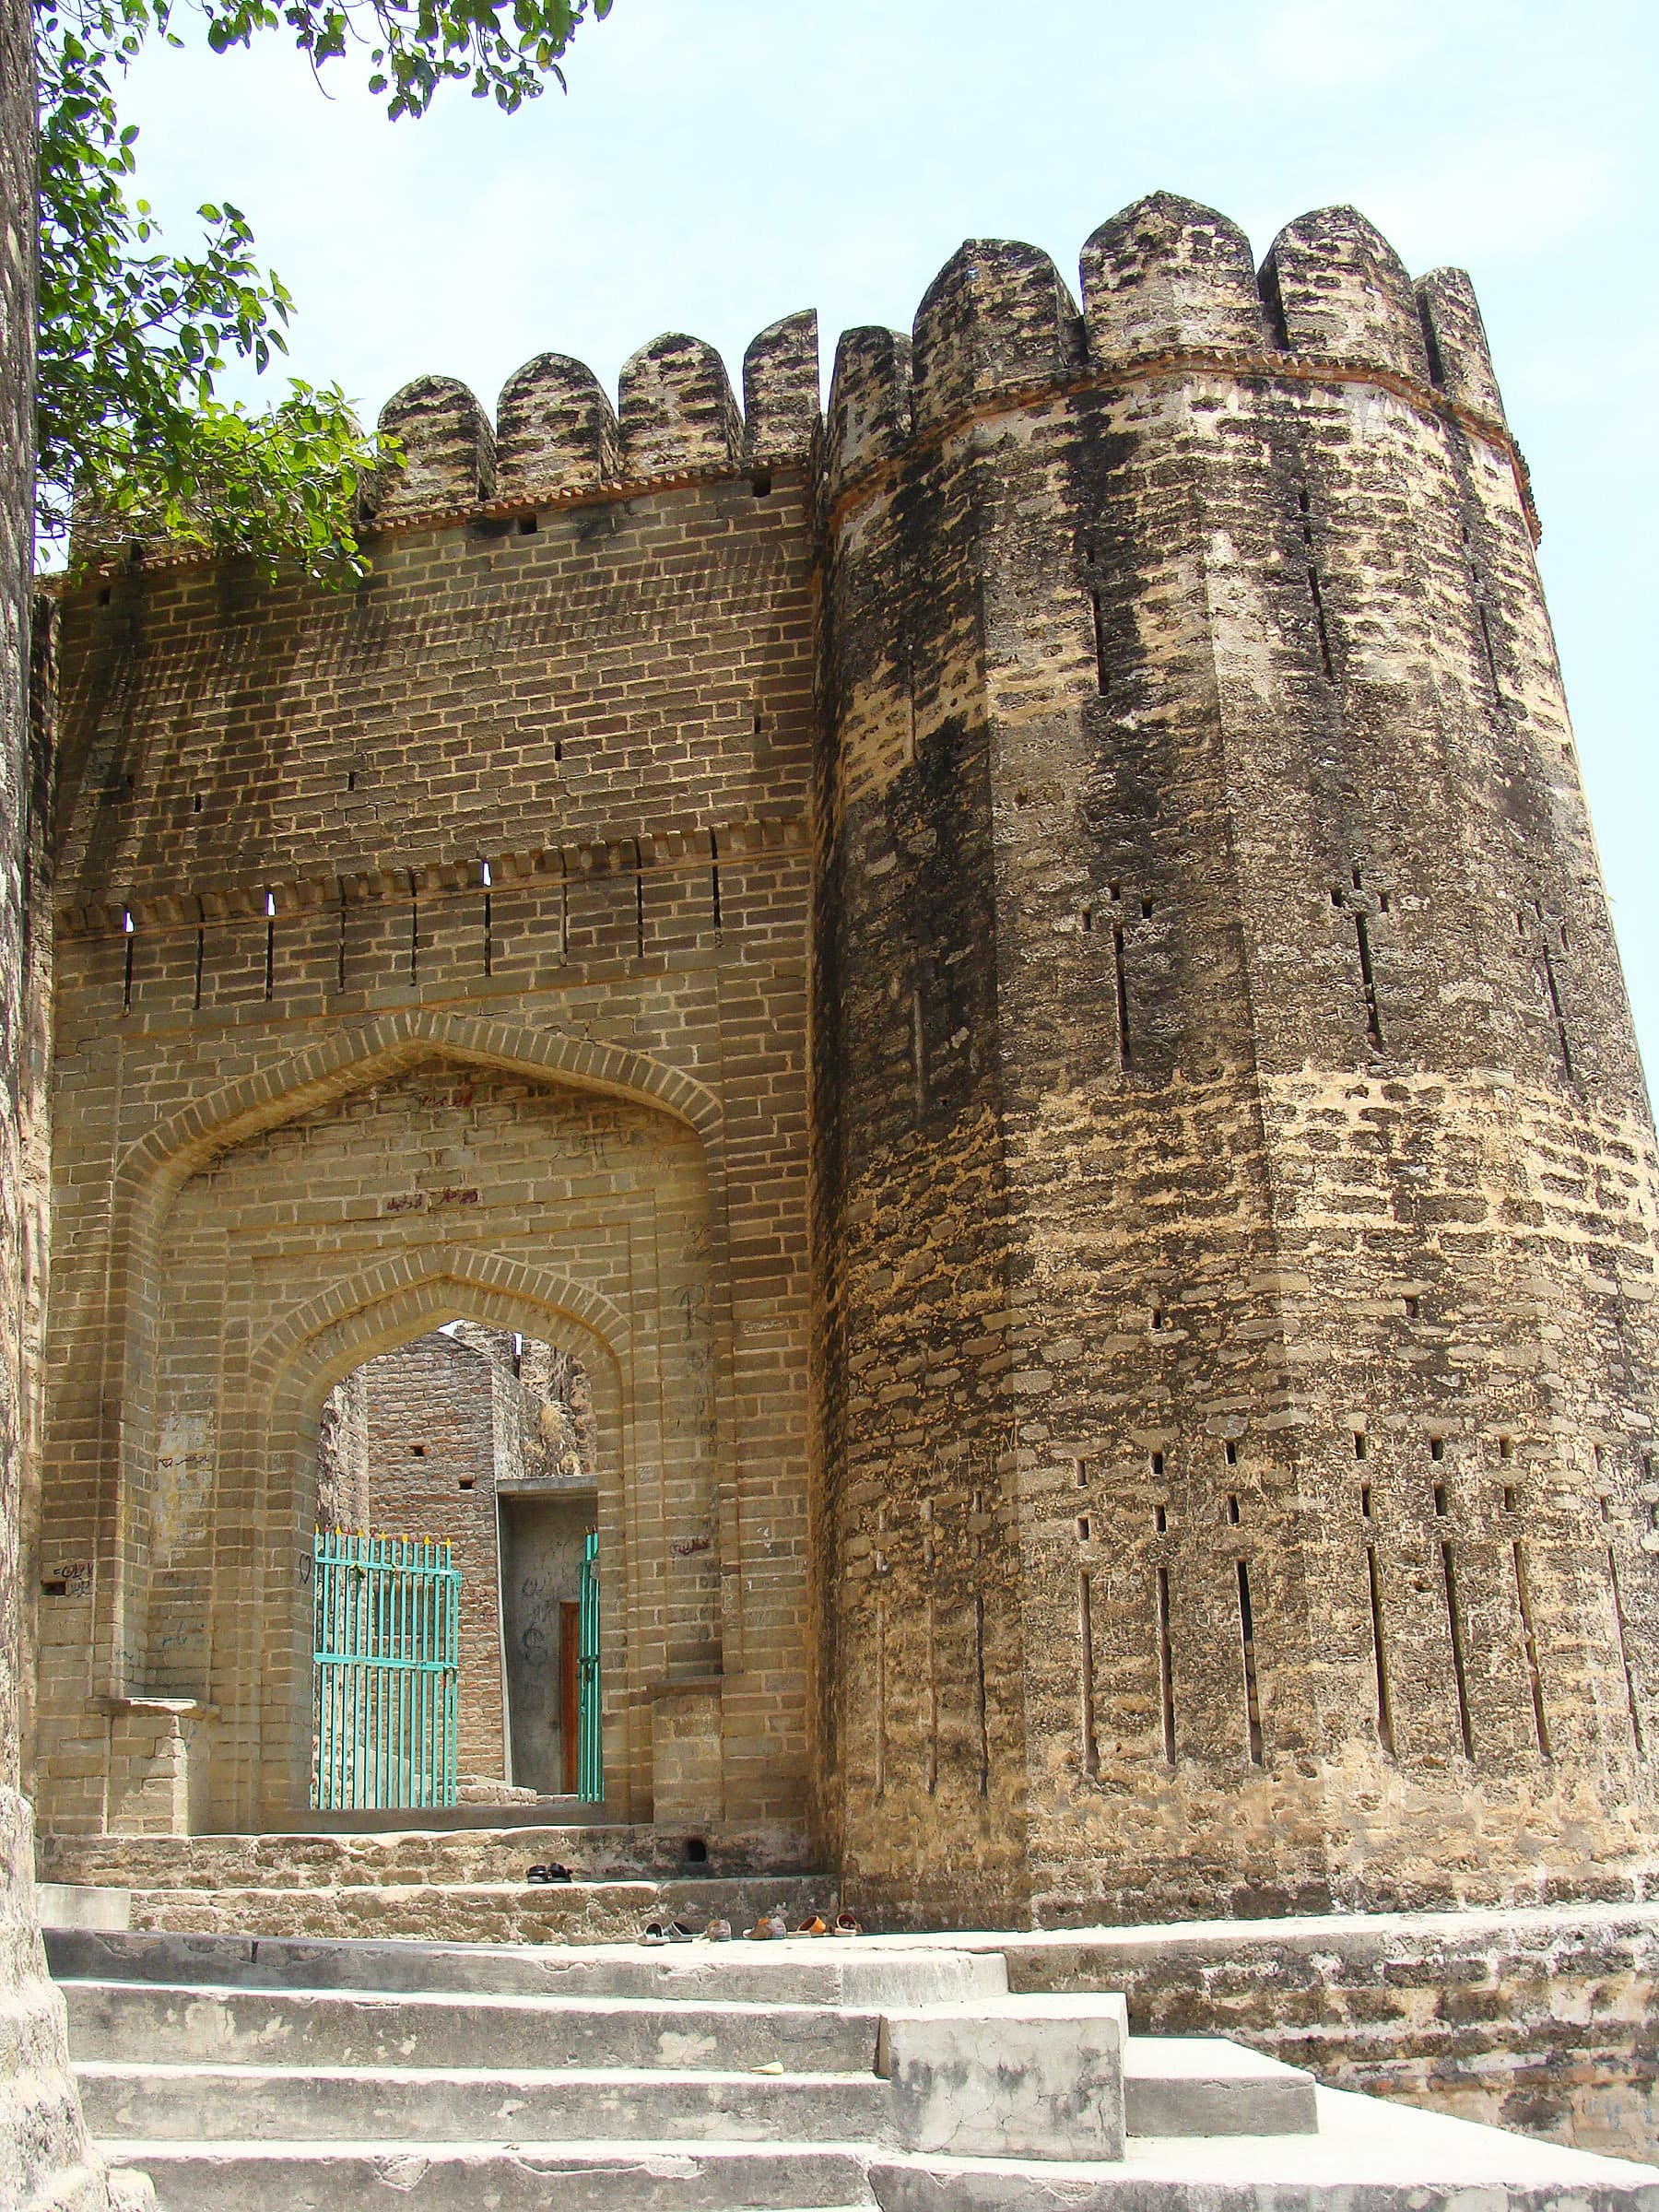 The main gate of the fort.